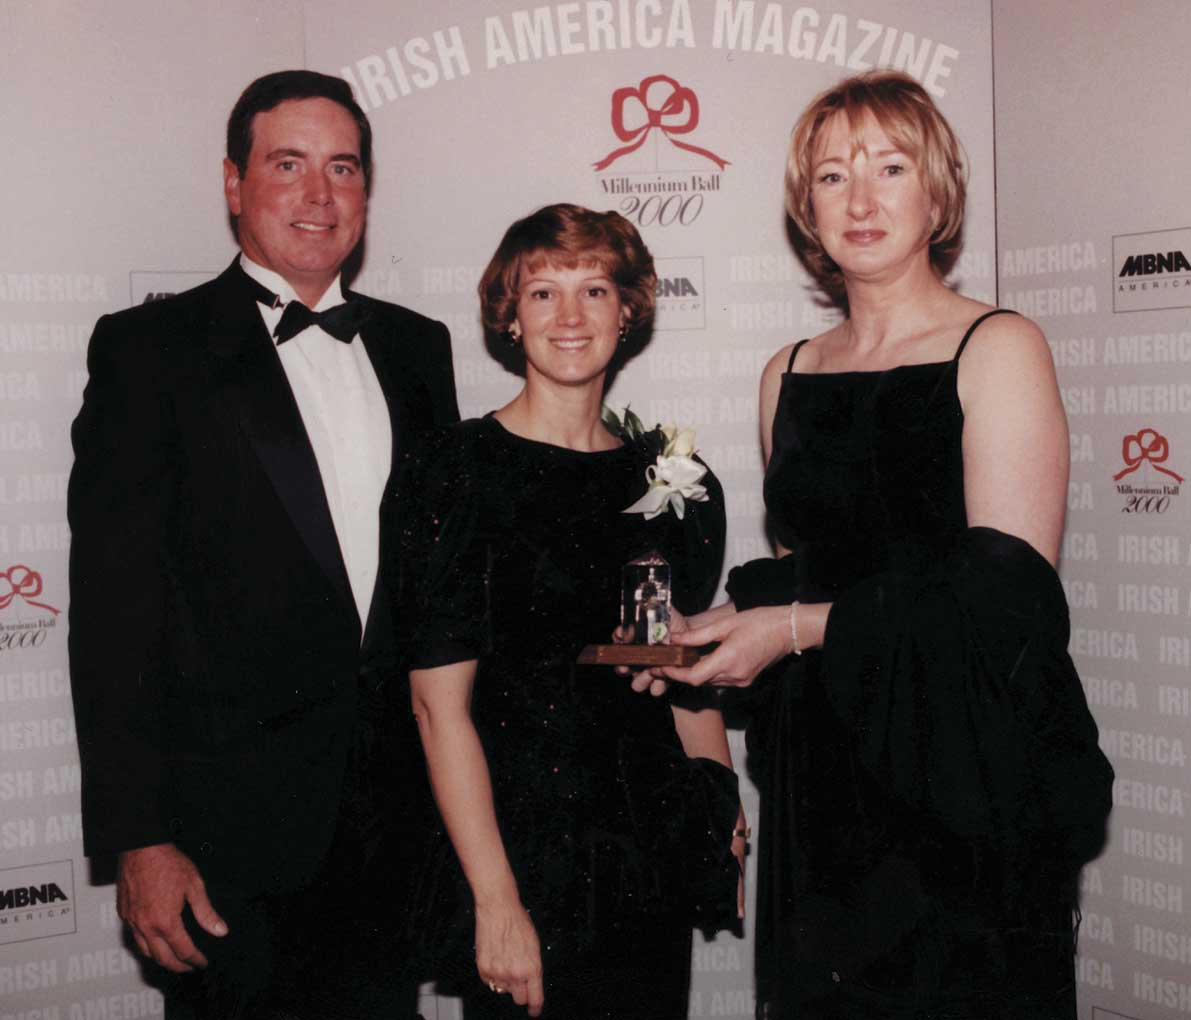 Eileen Collins, center, with her husband Pat Youngs, left, and  Patricia Harty at the 2000 Irish America Top 100 Awards.